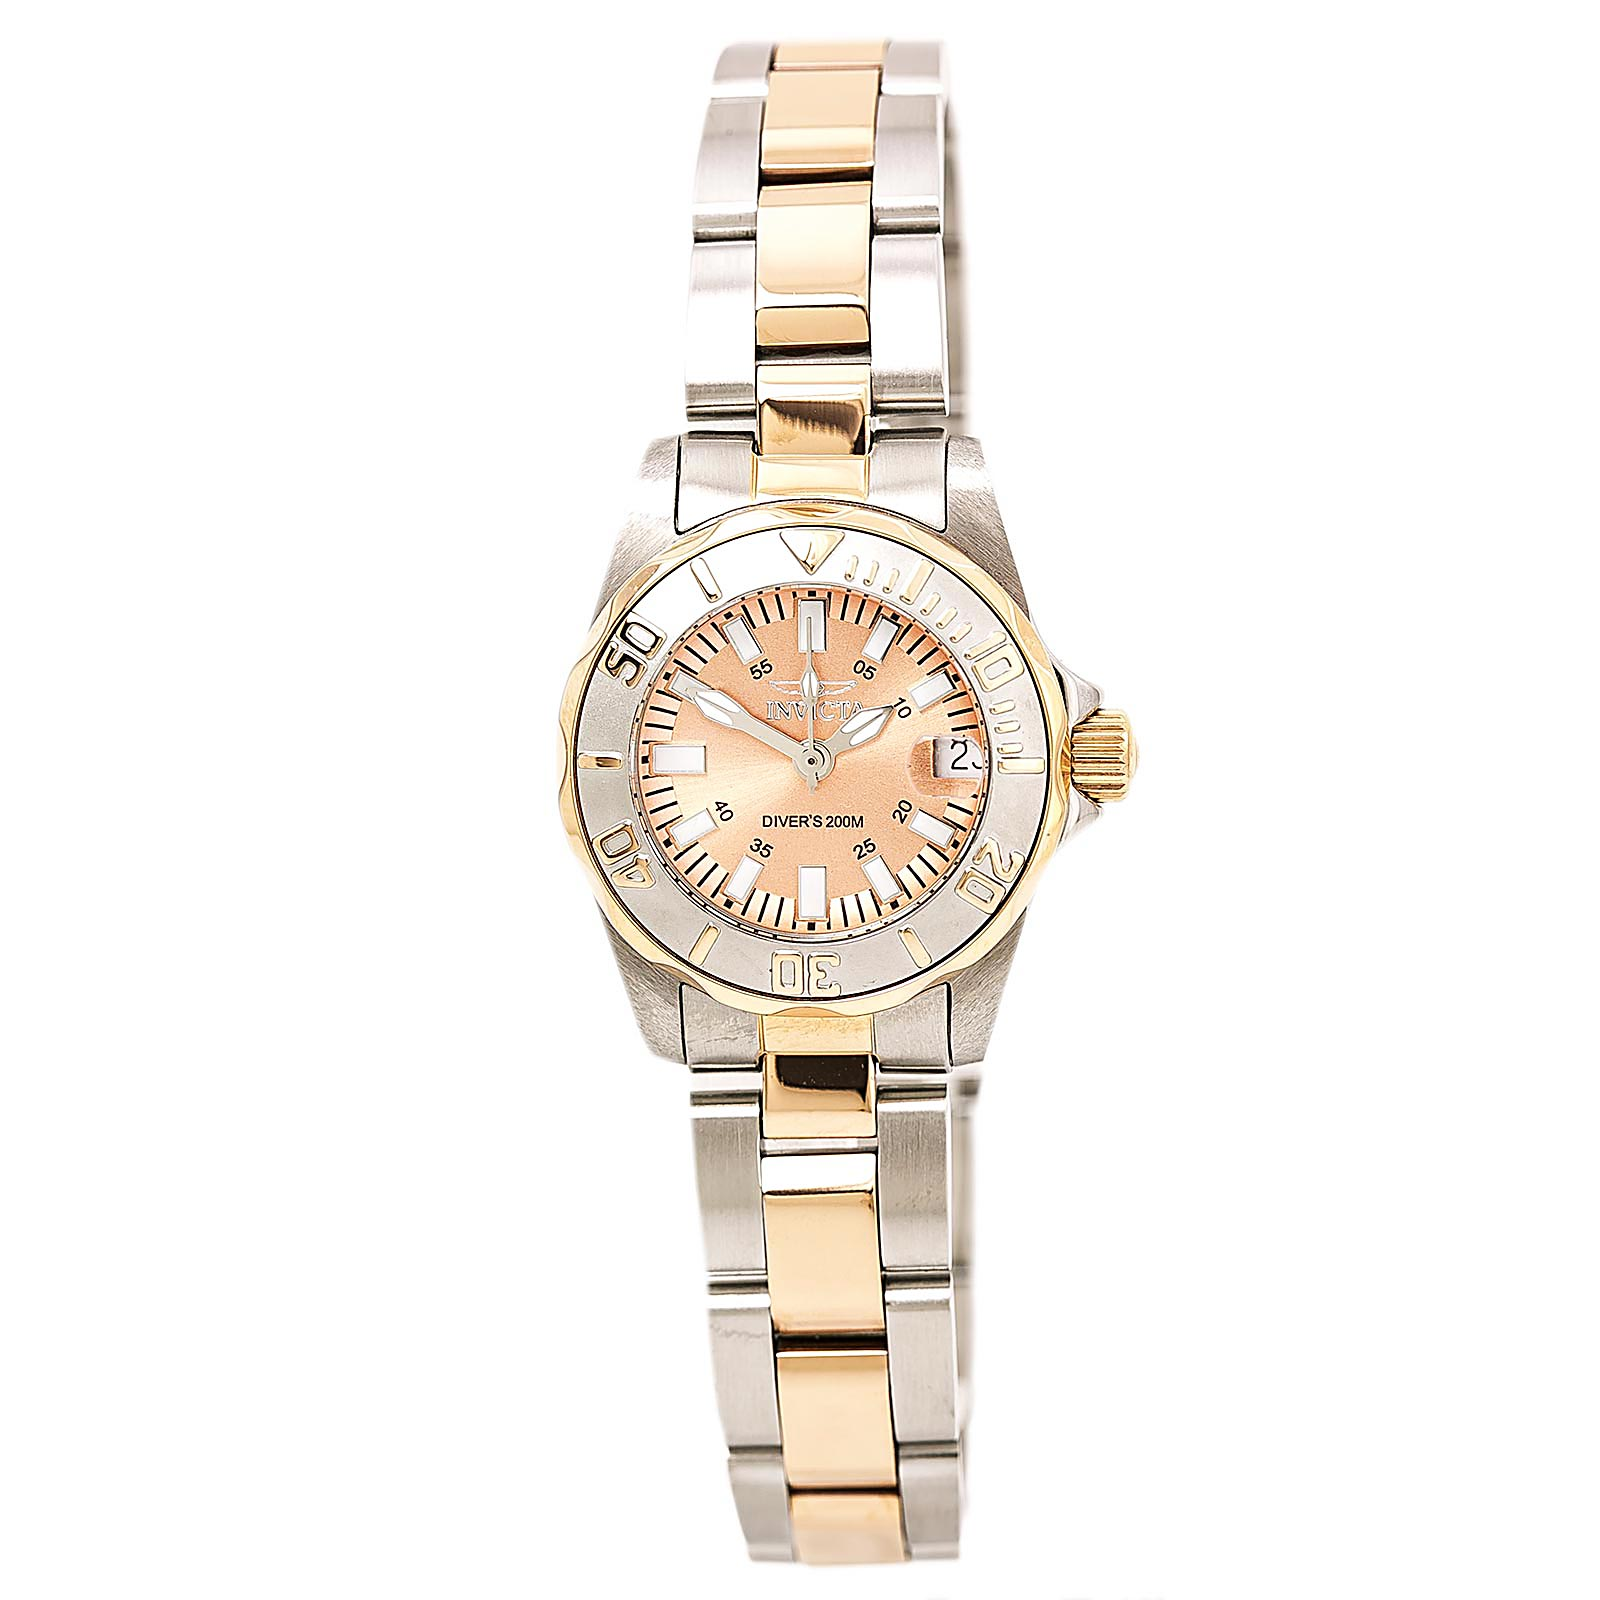 Invicta 7067 Women's Two Tone Rose Swiss Dive Watch